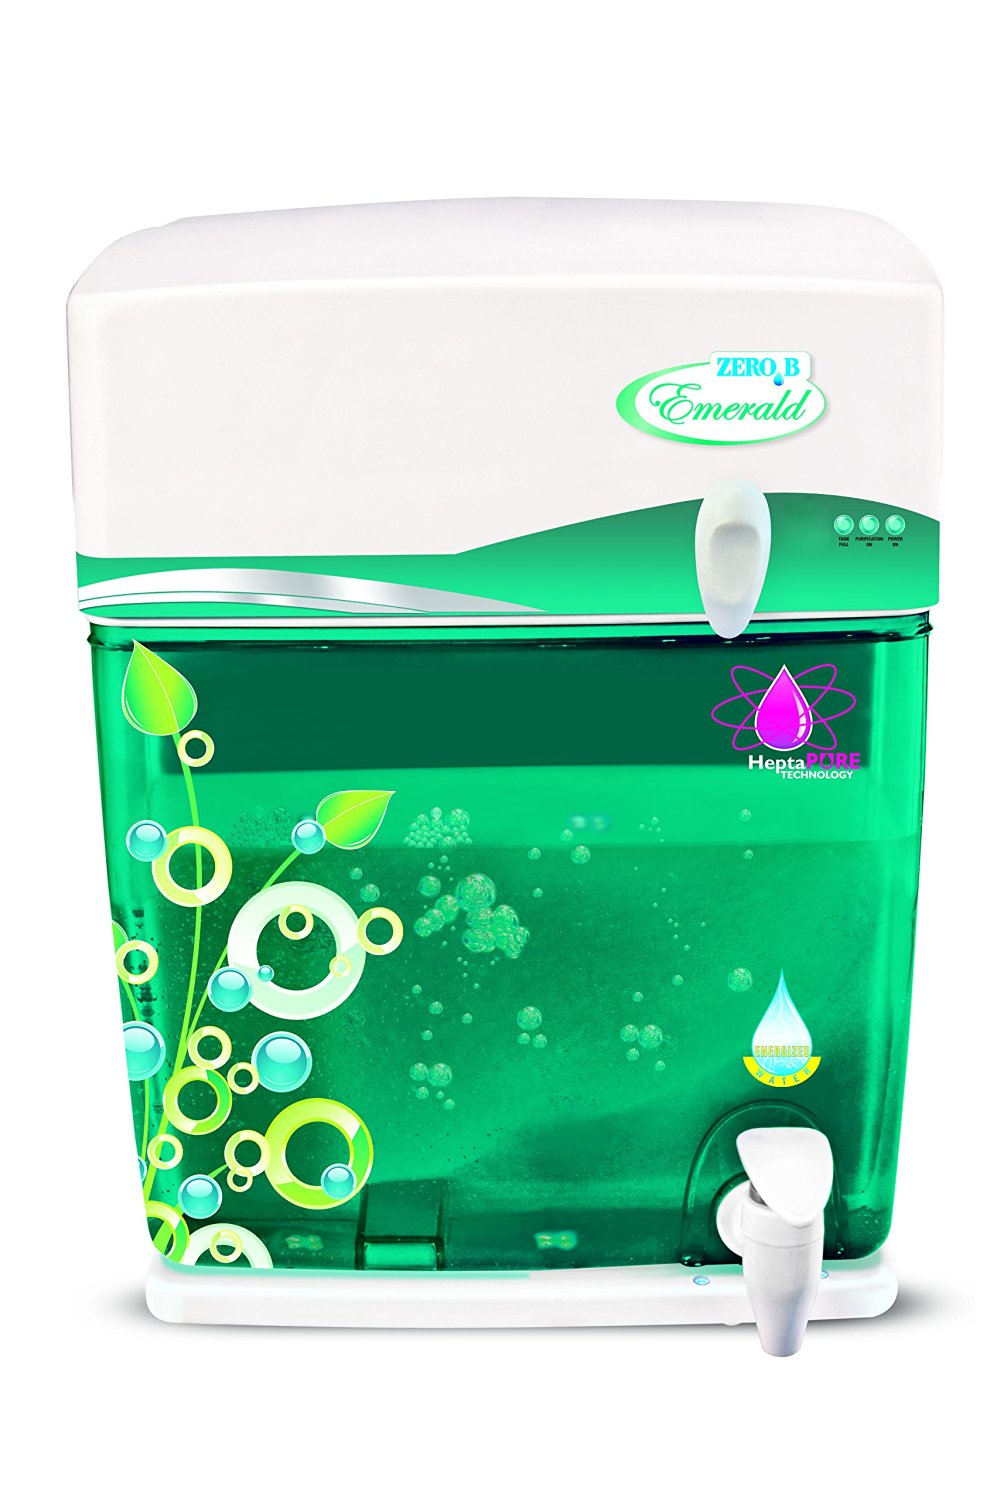 https://waterpurifiertips.com/wp-content/uploads/2016/11/Zero-B-Emerald-RO-Water-Purifier-White-and-Green.jpg